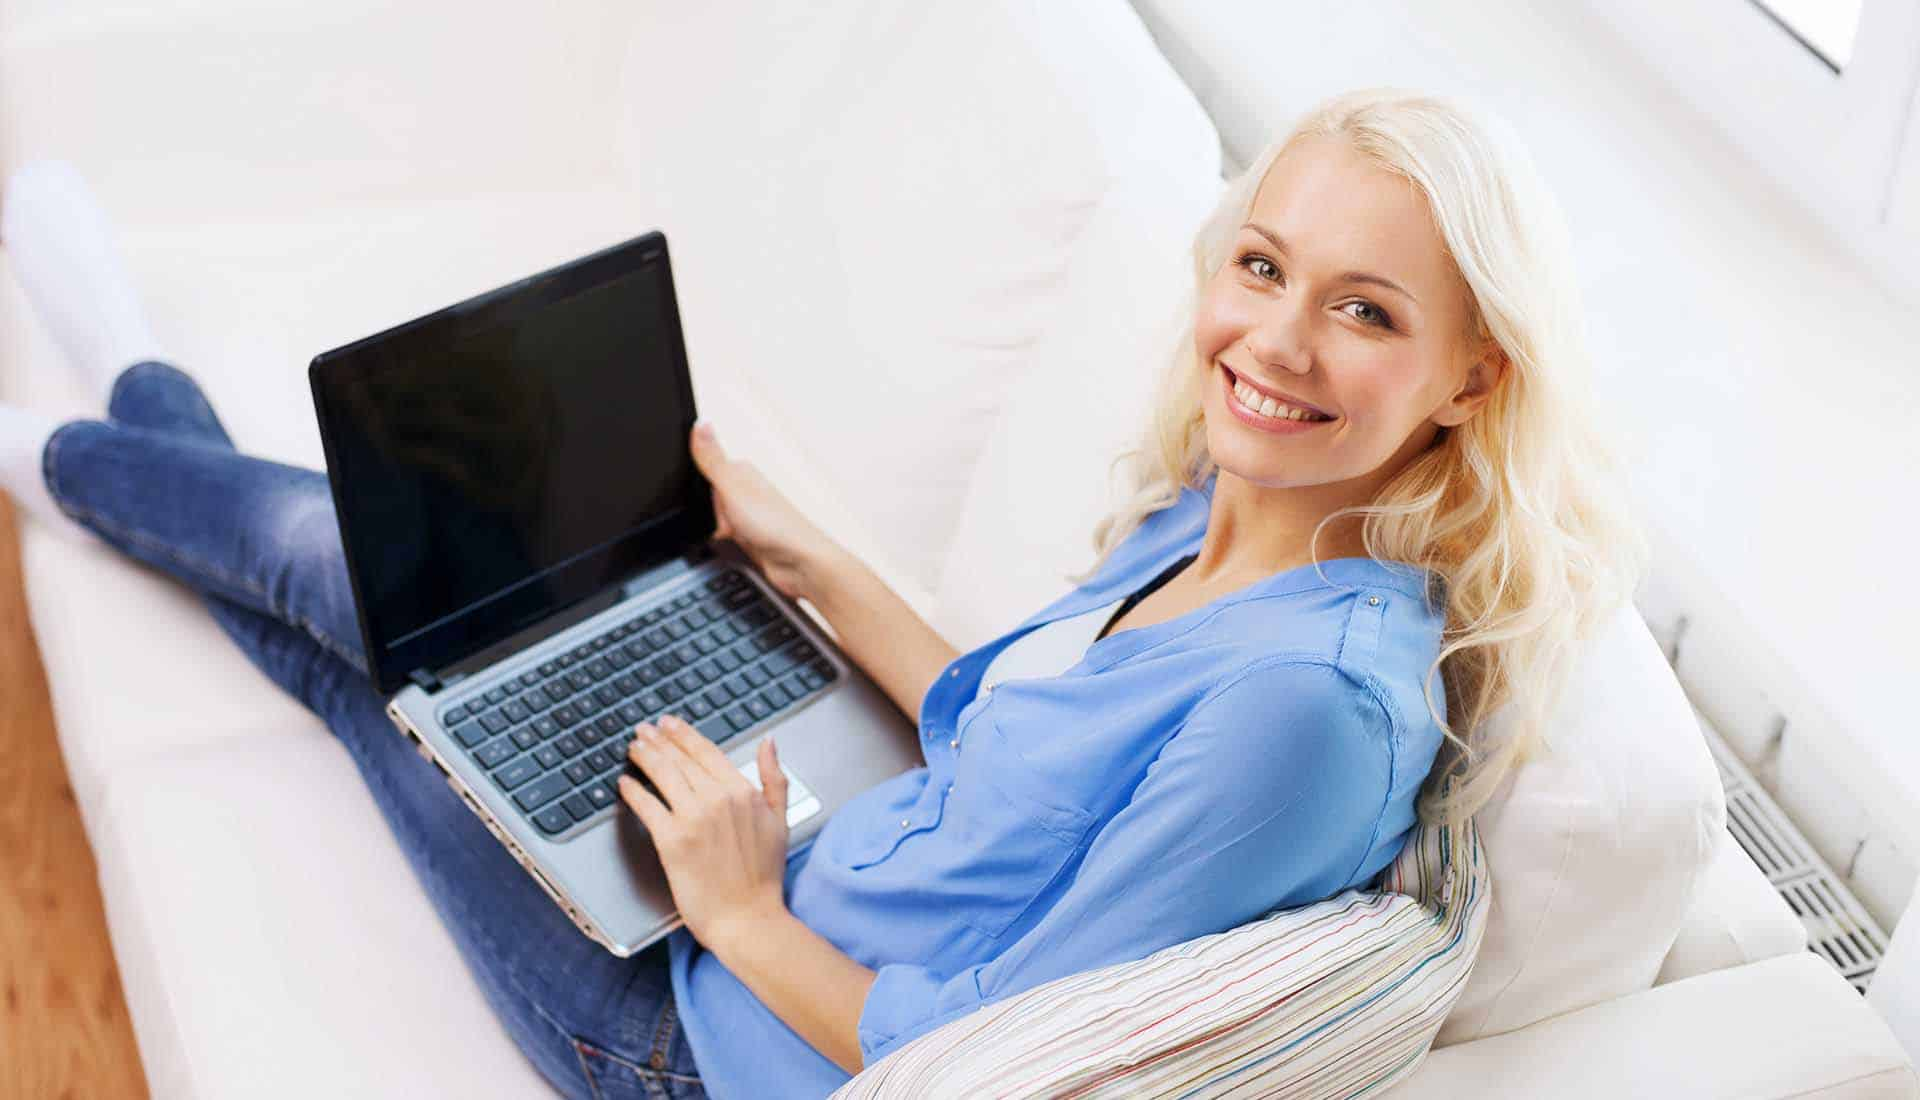 Smiling woman sitting on the couch with laptop computer reading reviews.